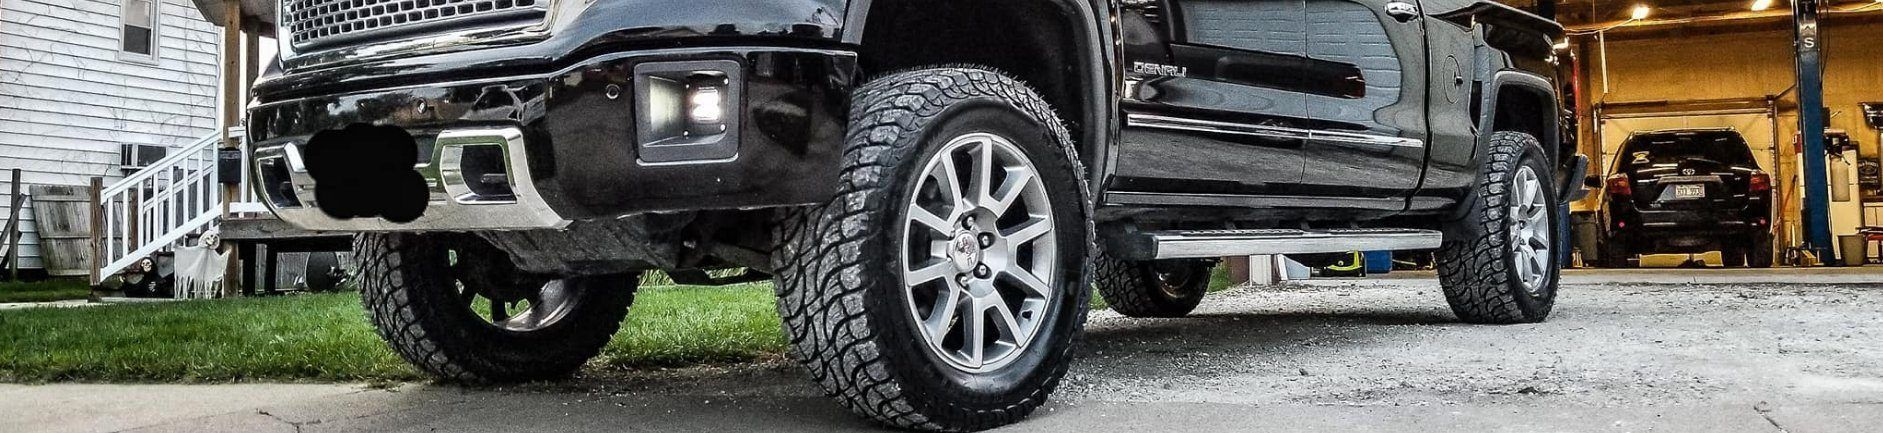 TreadWright All Terrain Axiom Tires